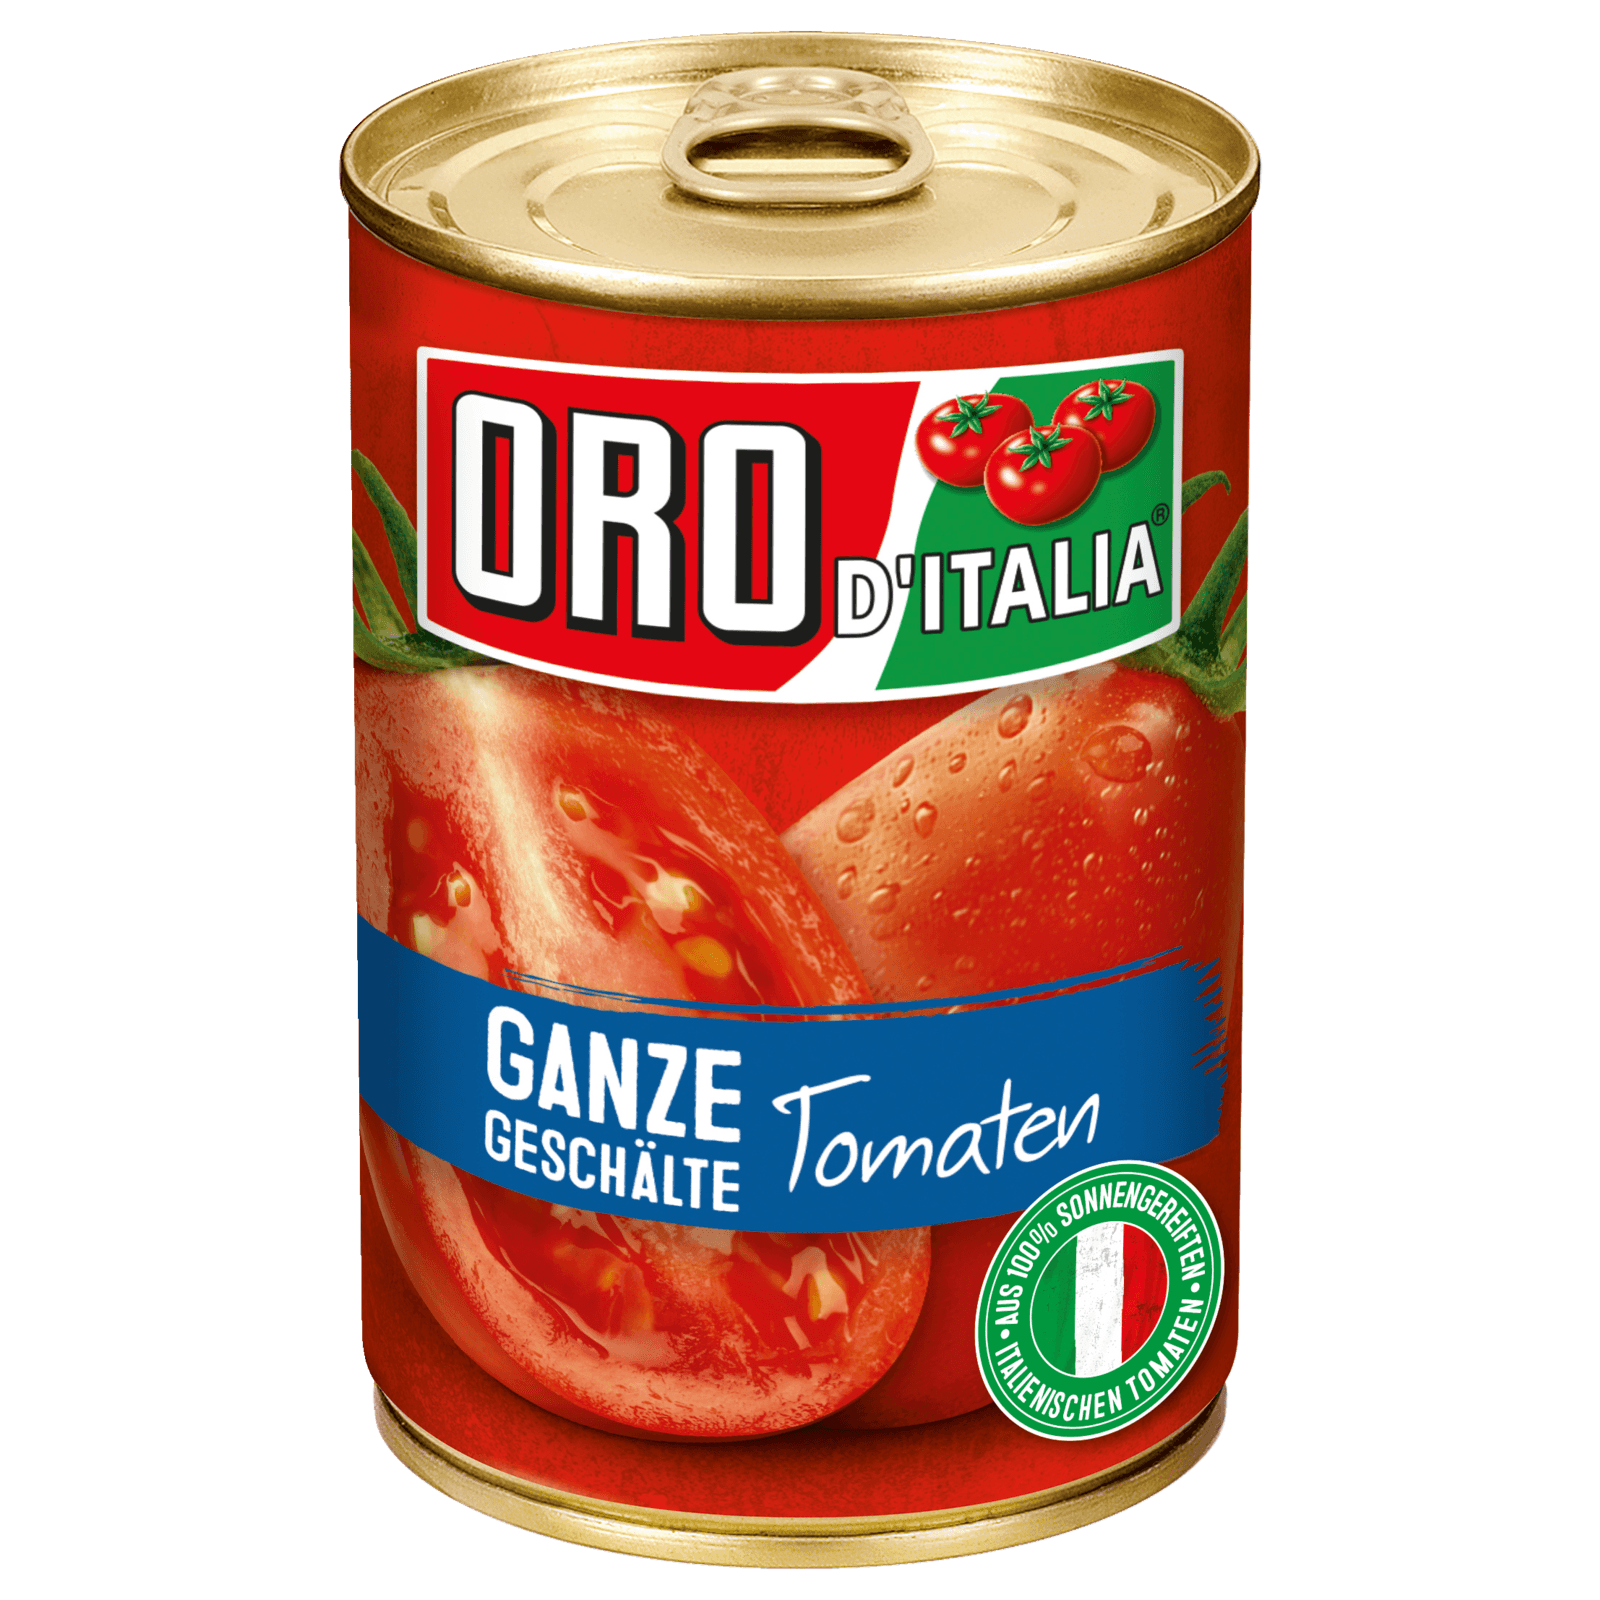 Oro di Italia Ganze Tomaten in Saft 425ml